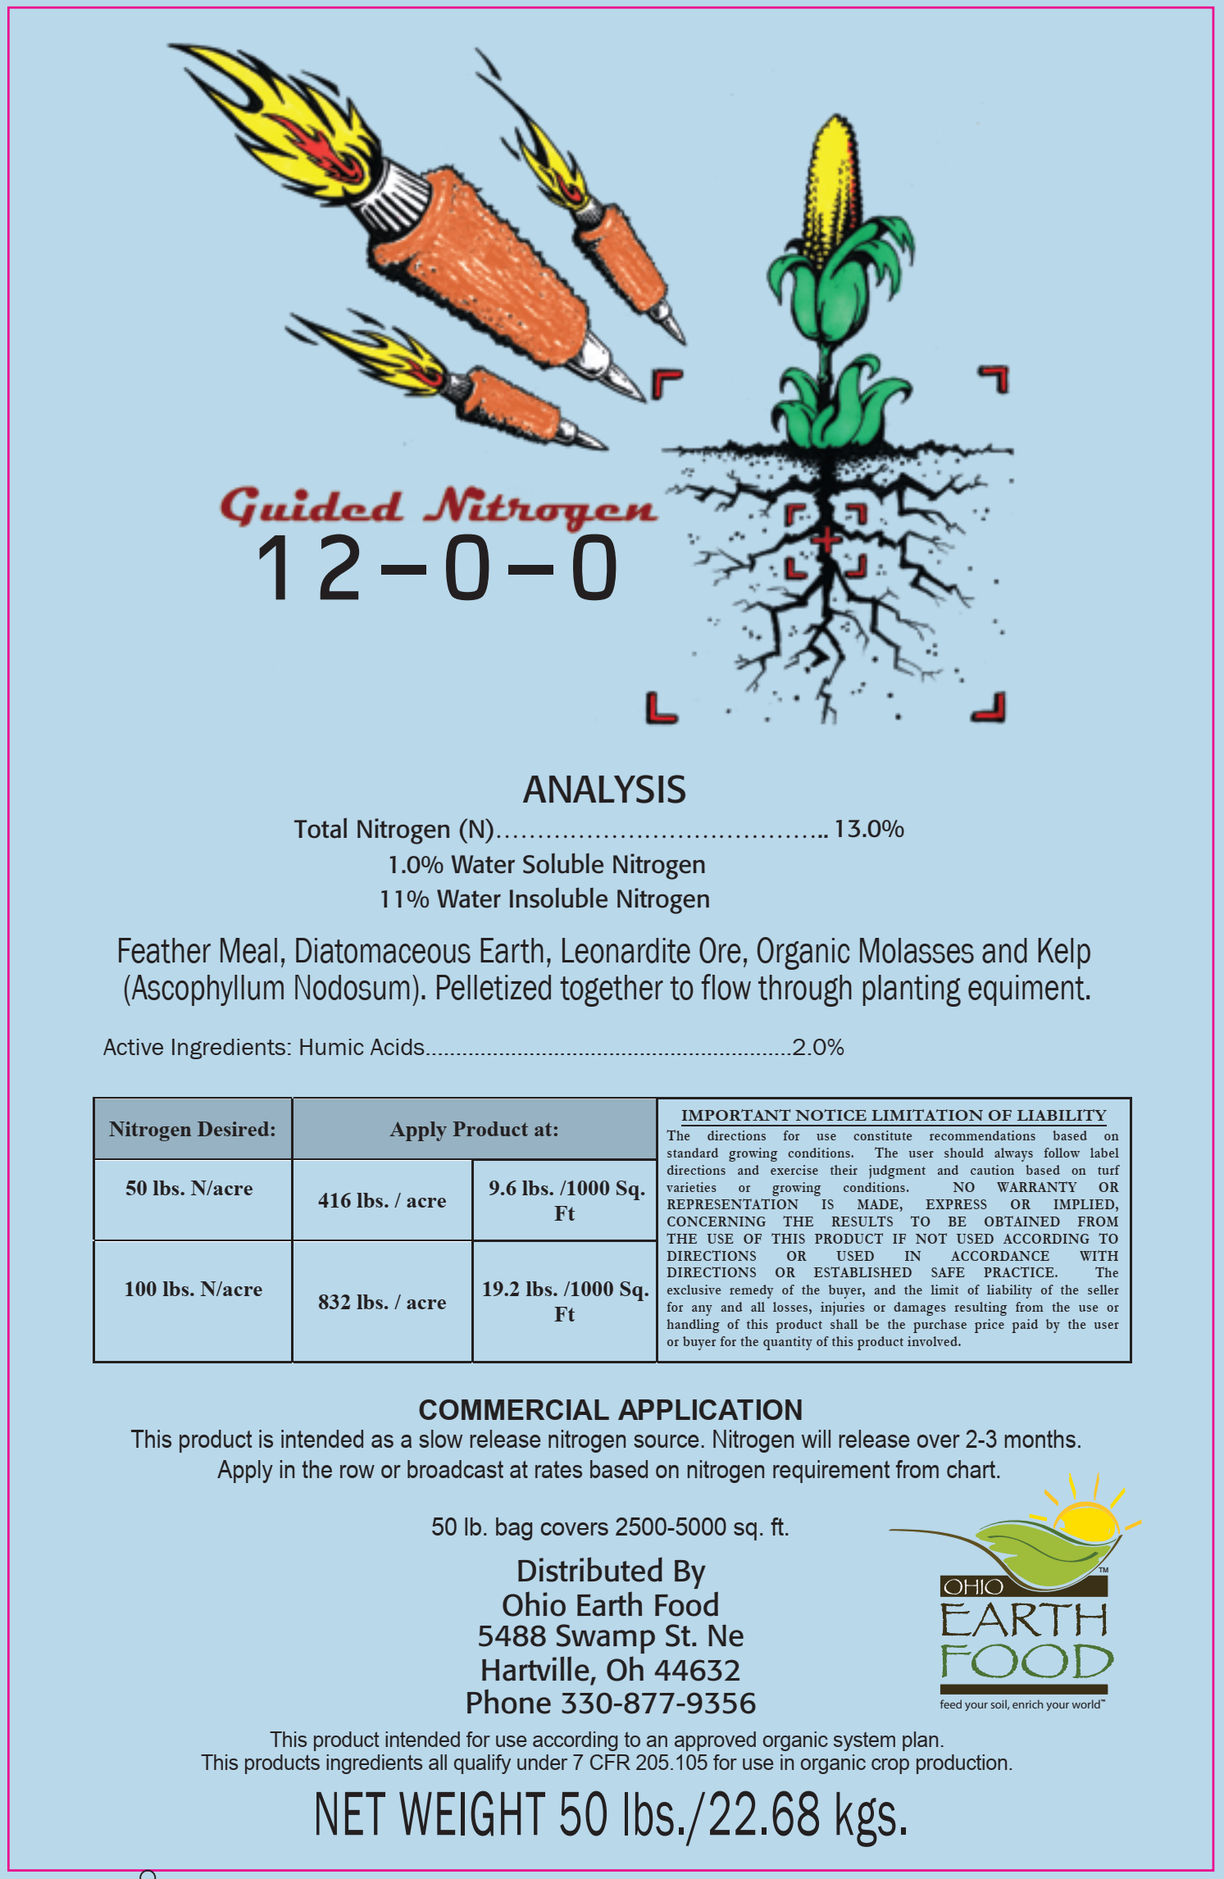 Guided Nitrogen 12-0-0 pelletized feather meal with kelp, humate and Diat. Earth